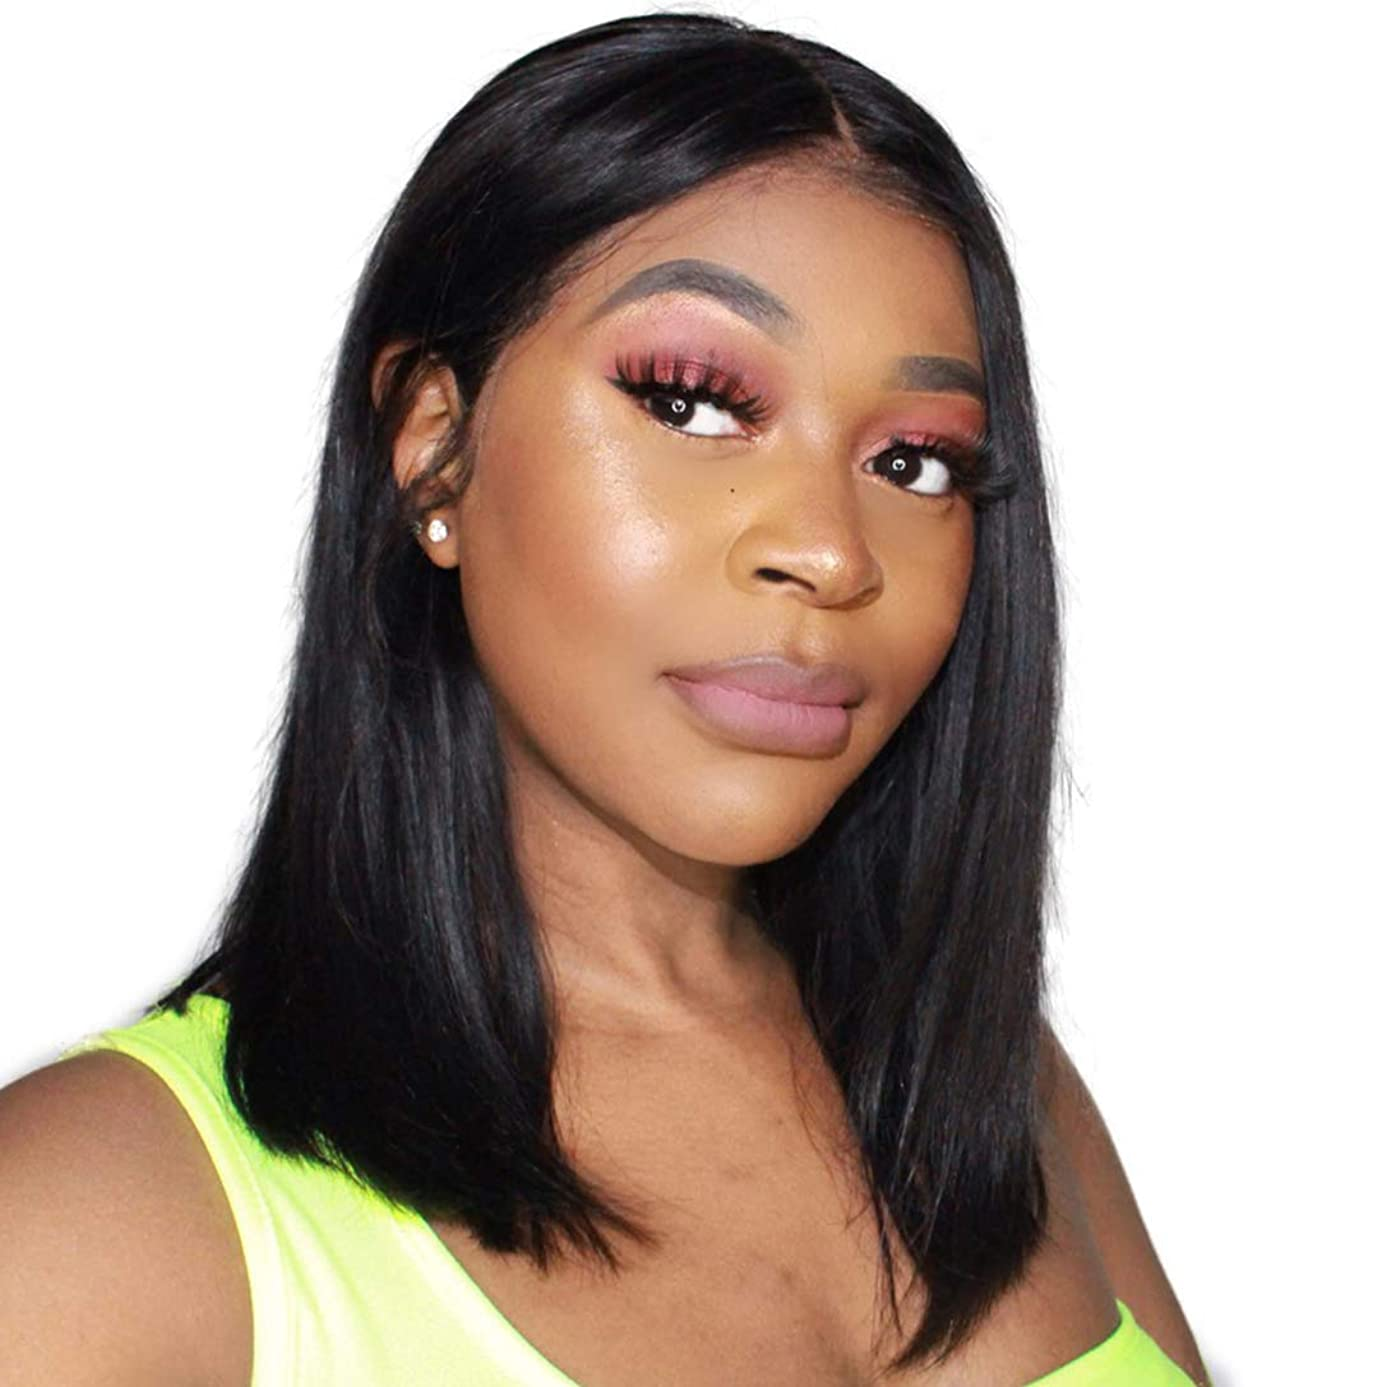 Brazilian Virgin Human Hair Lace Front Bob Wigs for Black Women Glueless Short Bob Human Hair Wig Pre Plucked with Baby Hair (8 Inches, 4x4 Lace Closure Wig)